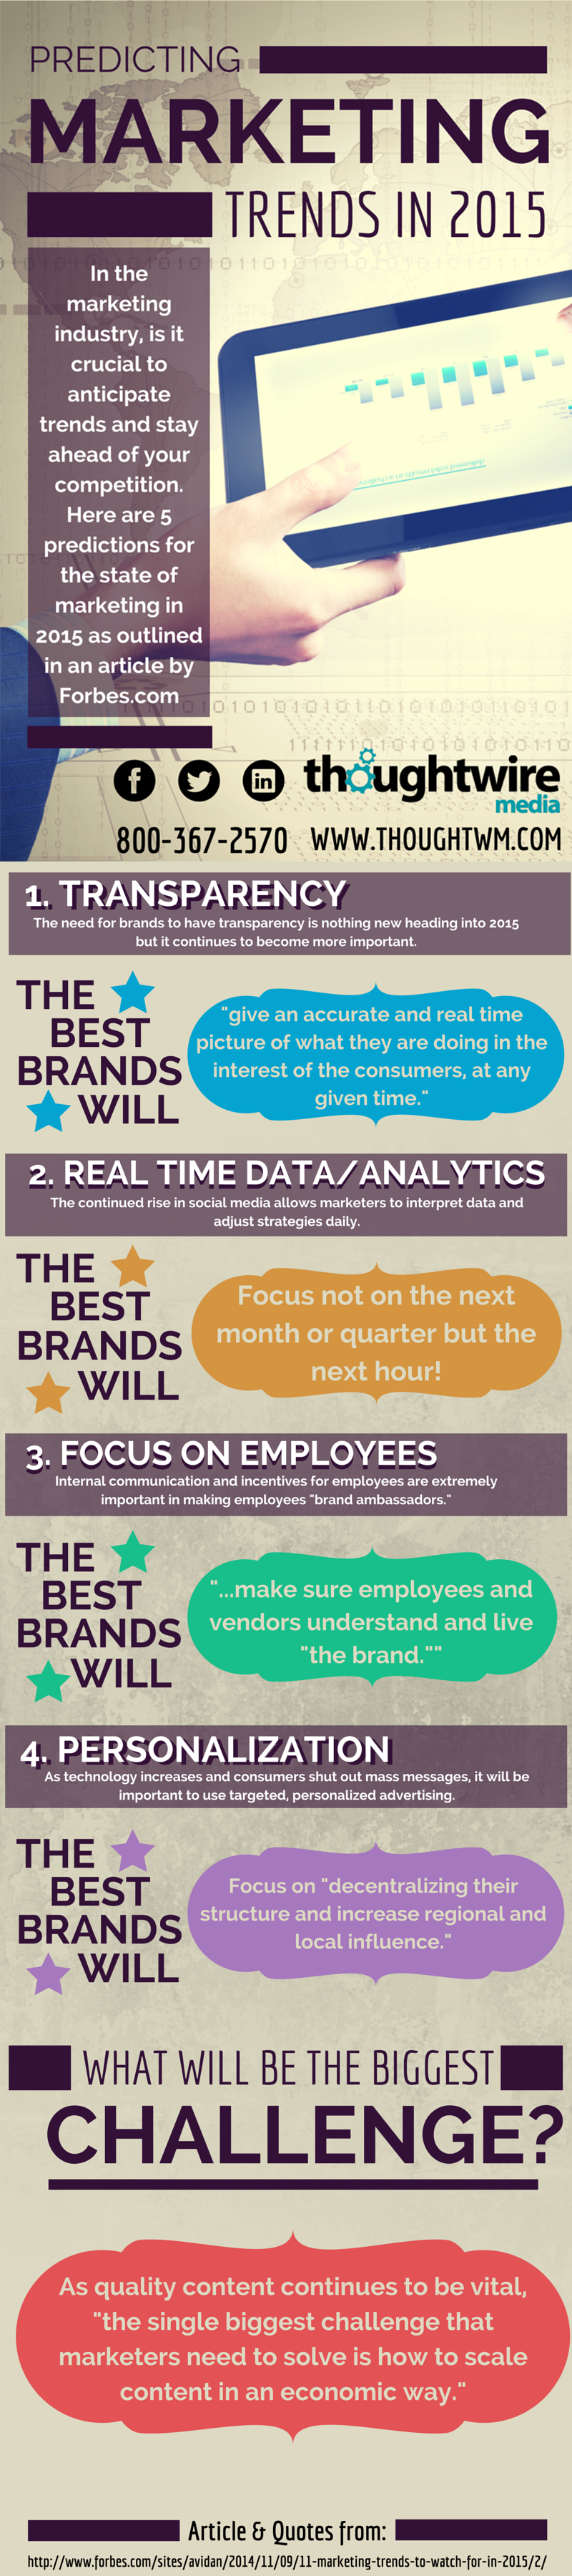 TW Media - Infographic - 2015 Marketing Predictions